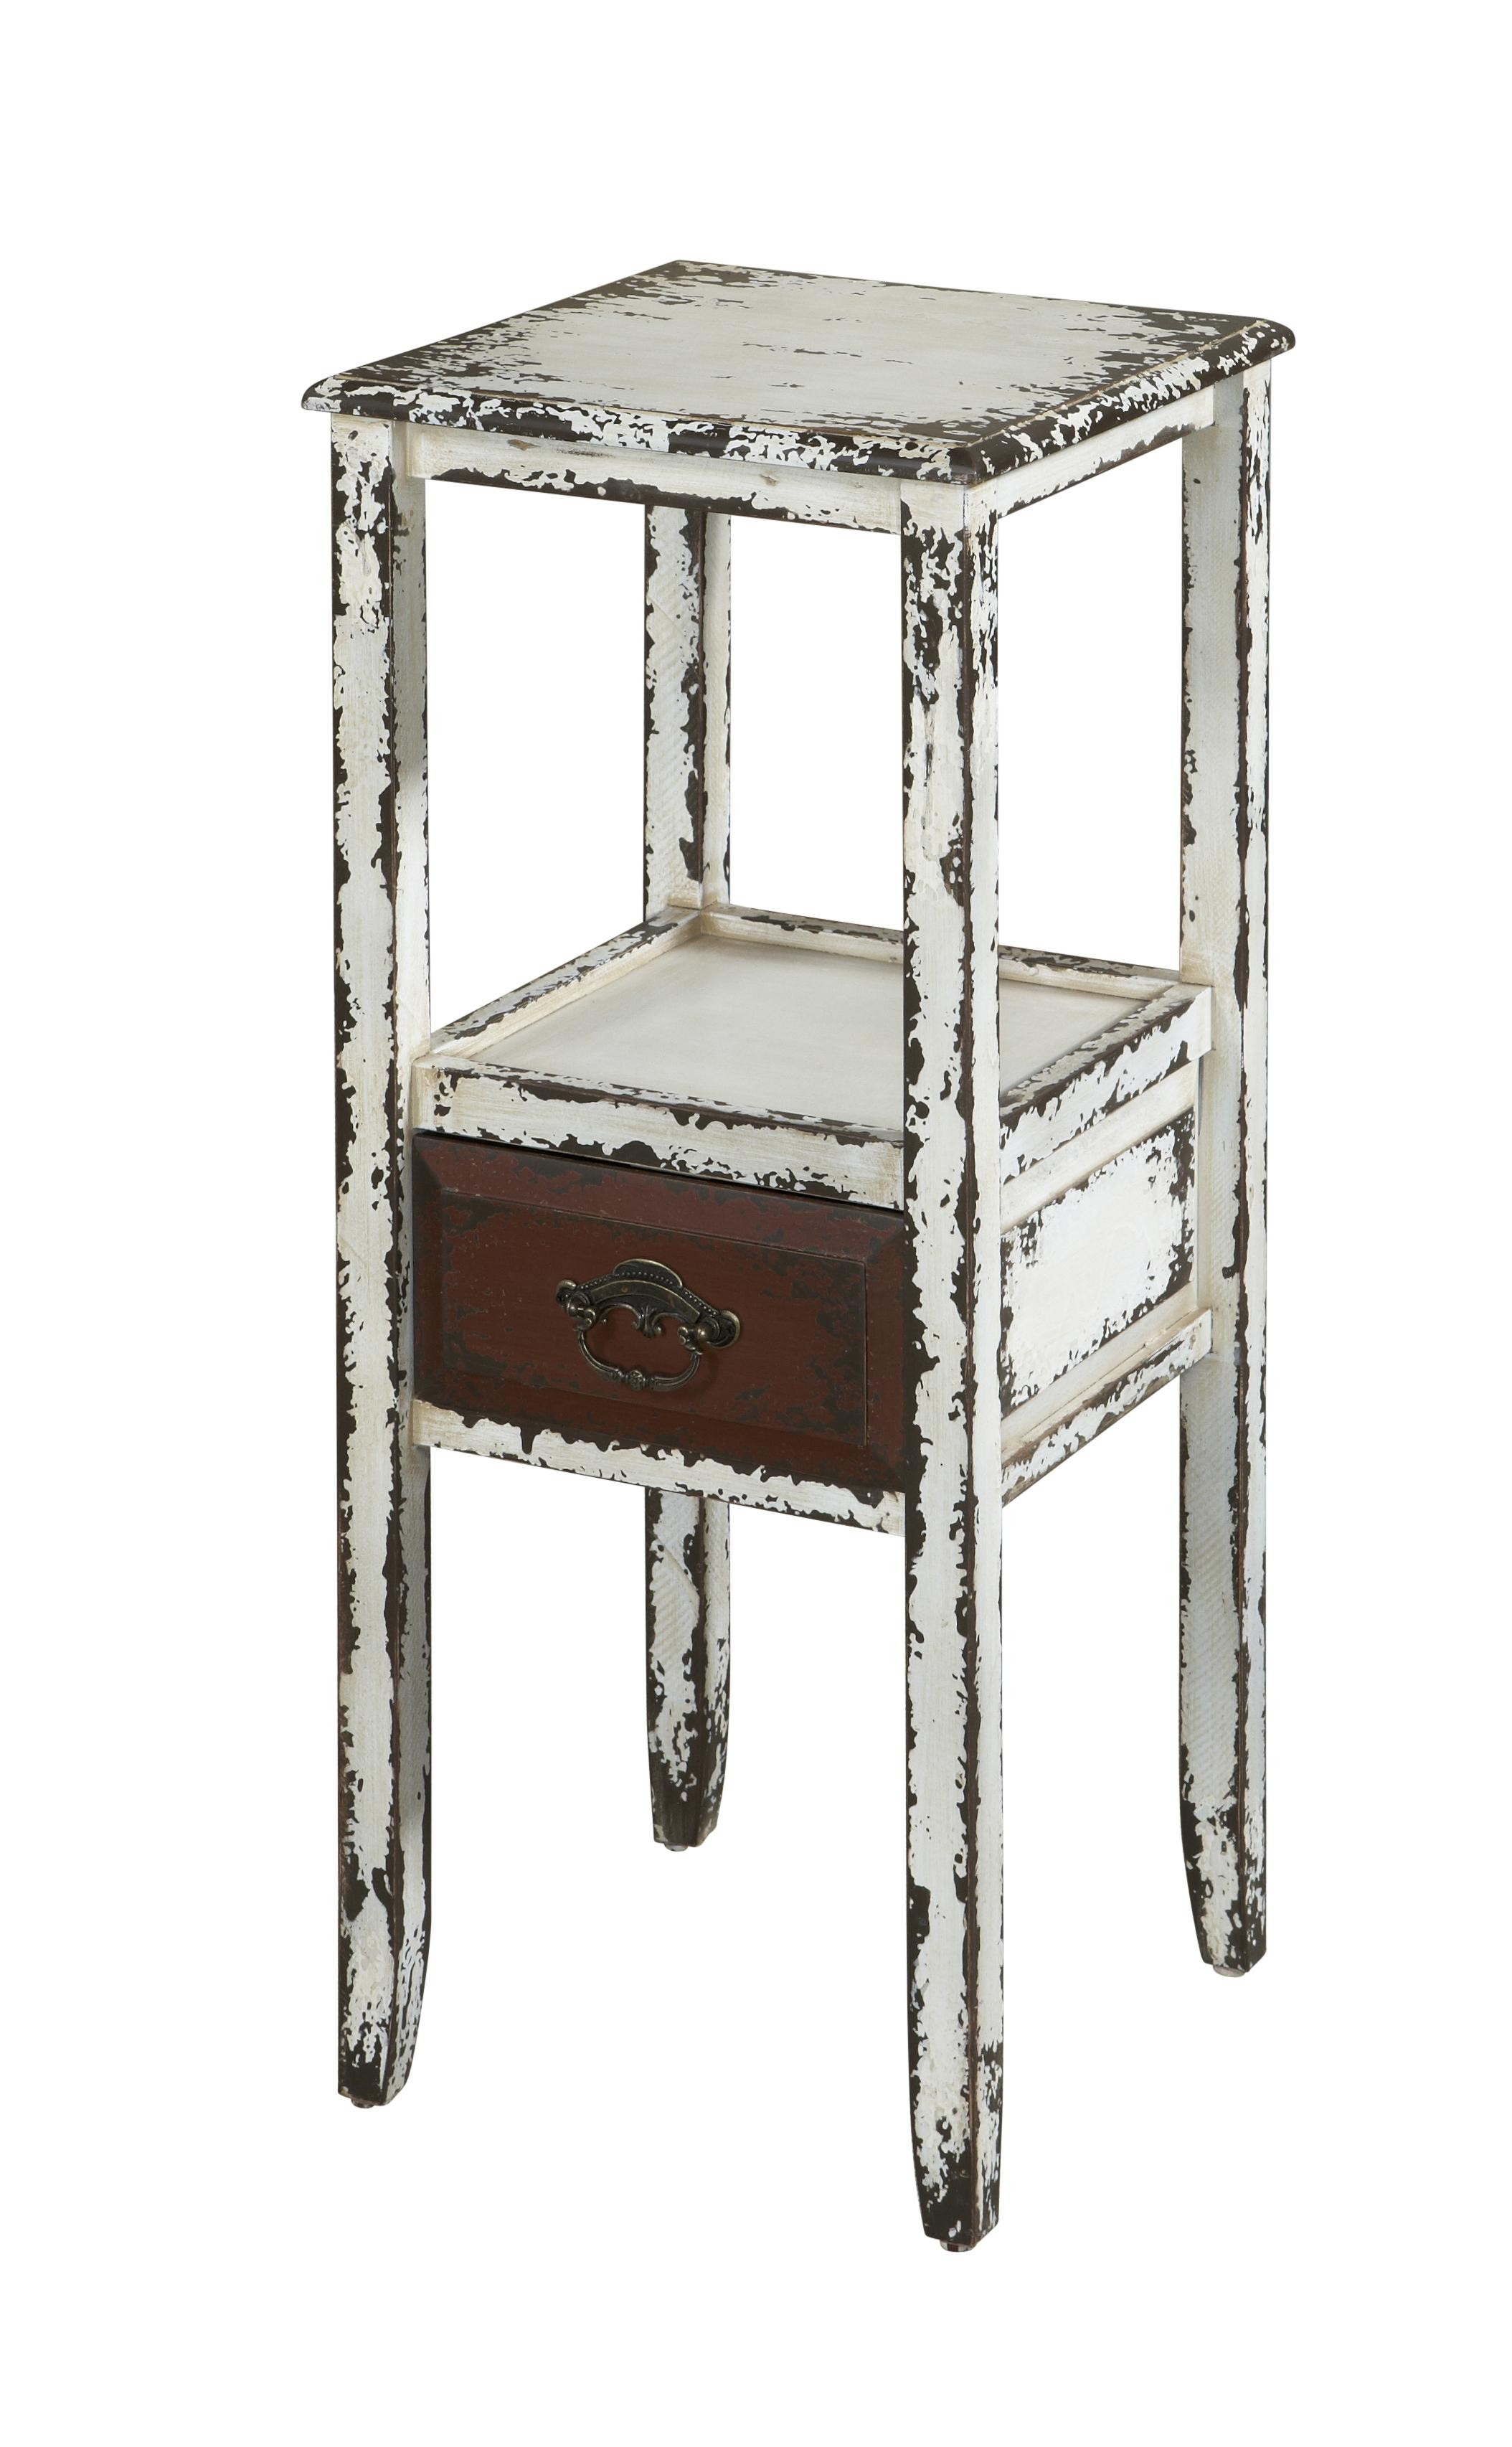 antique white end tables powell parcel drum accent table gold kartell chairs replica wood target concrete shelving ikea box unit dinner barn door closet doors black contemporary